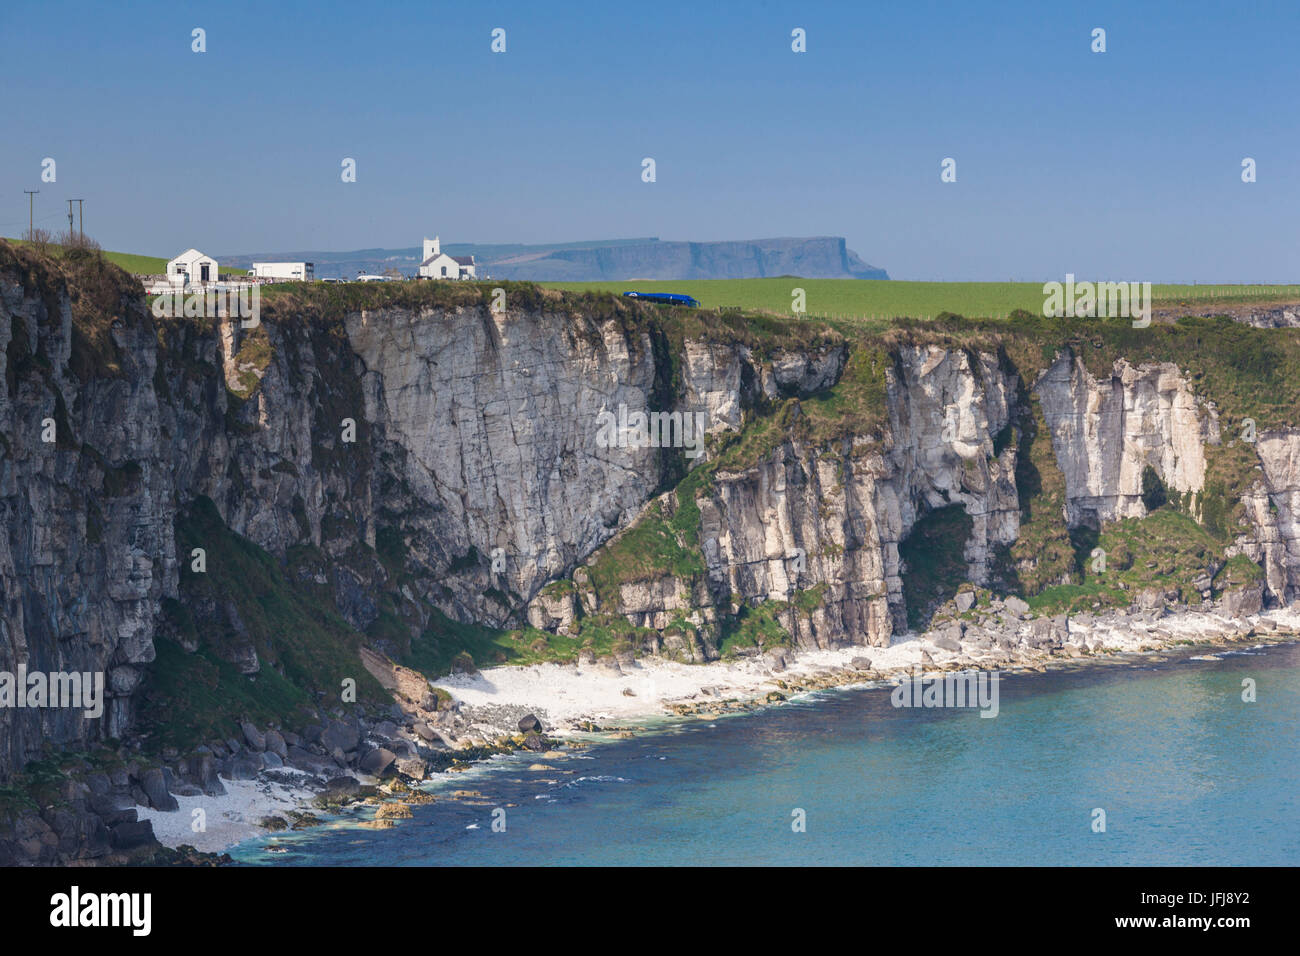 UK, Northern Ireland, County Antrim, Ballintoy, Carrick-a-Rede Rope Bridge, landscape - Stock Image